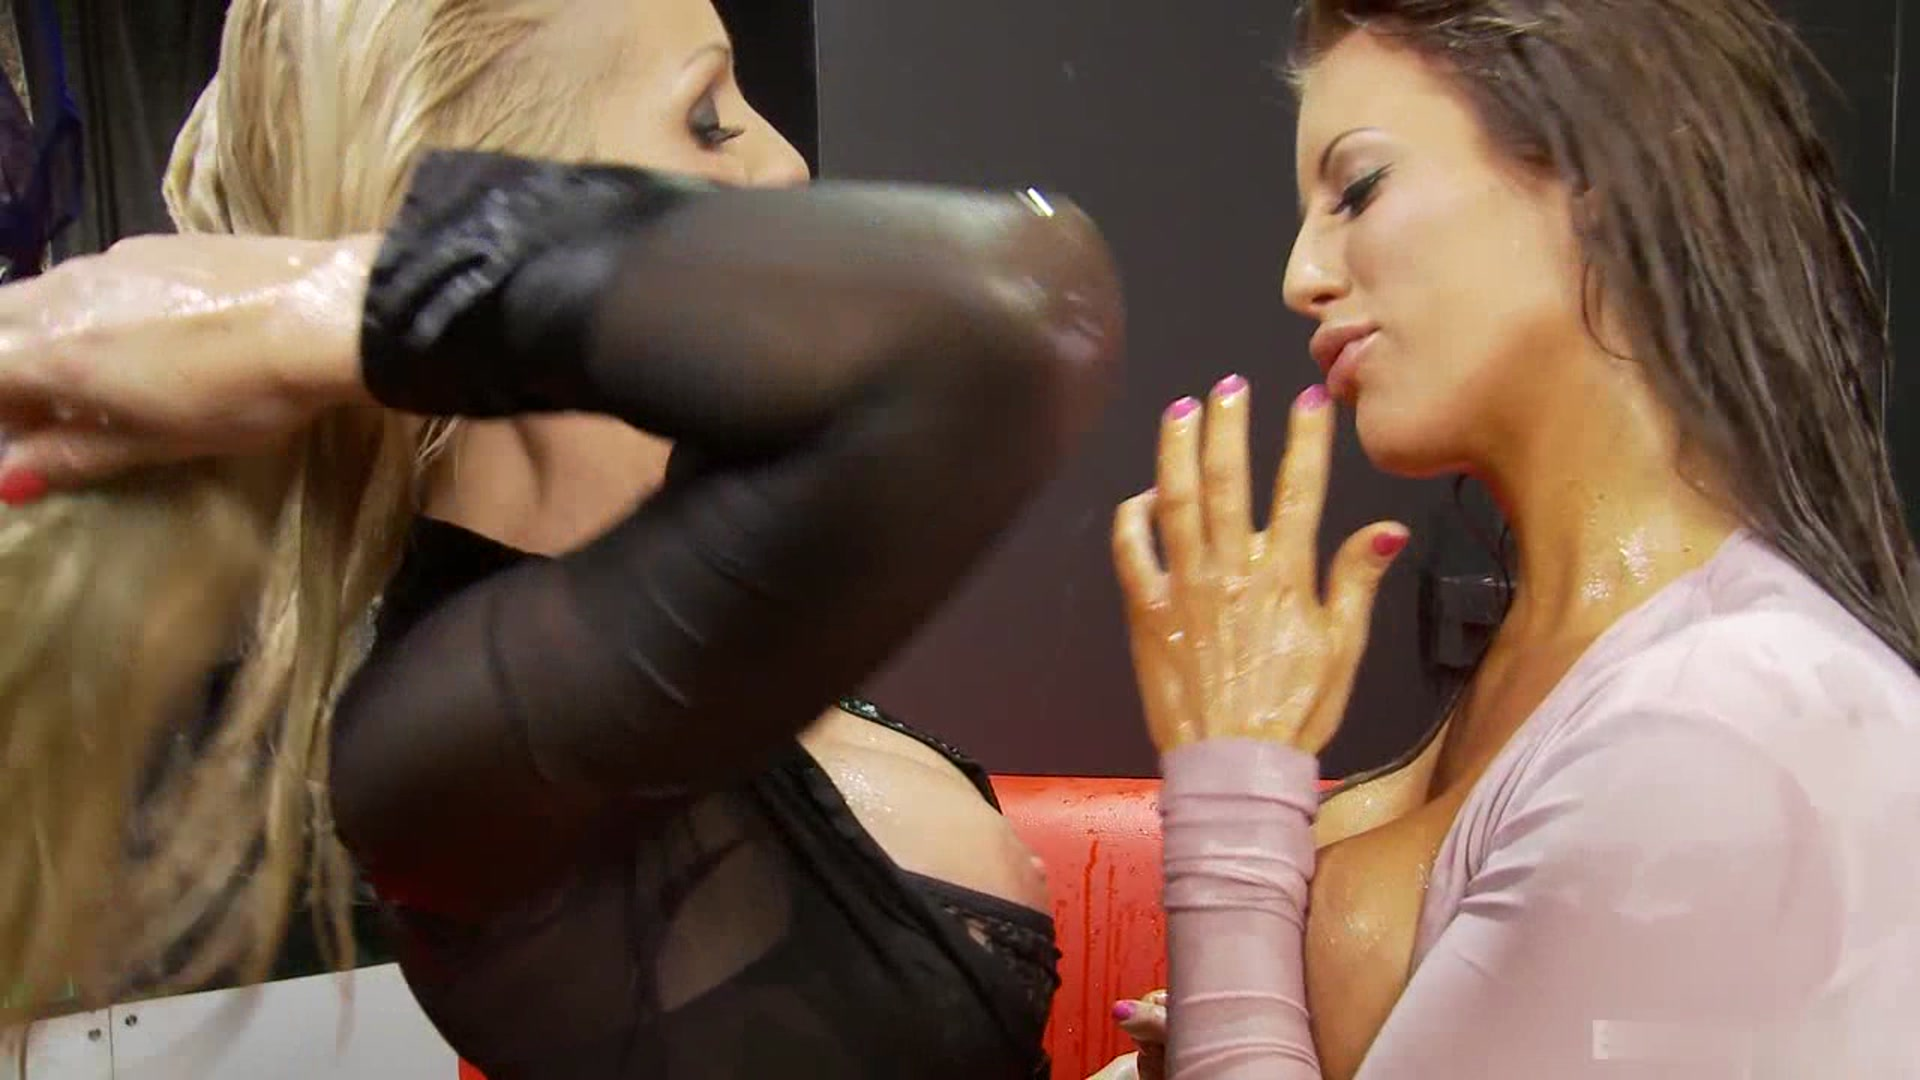 Girl the squirting camera of pic on